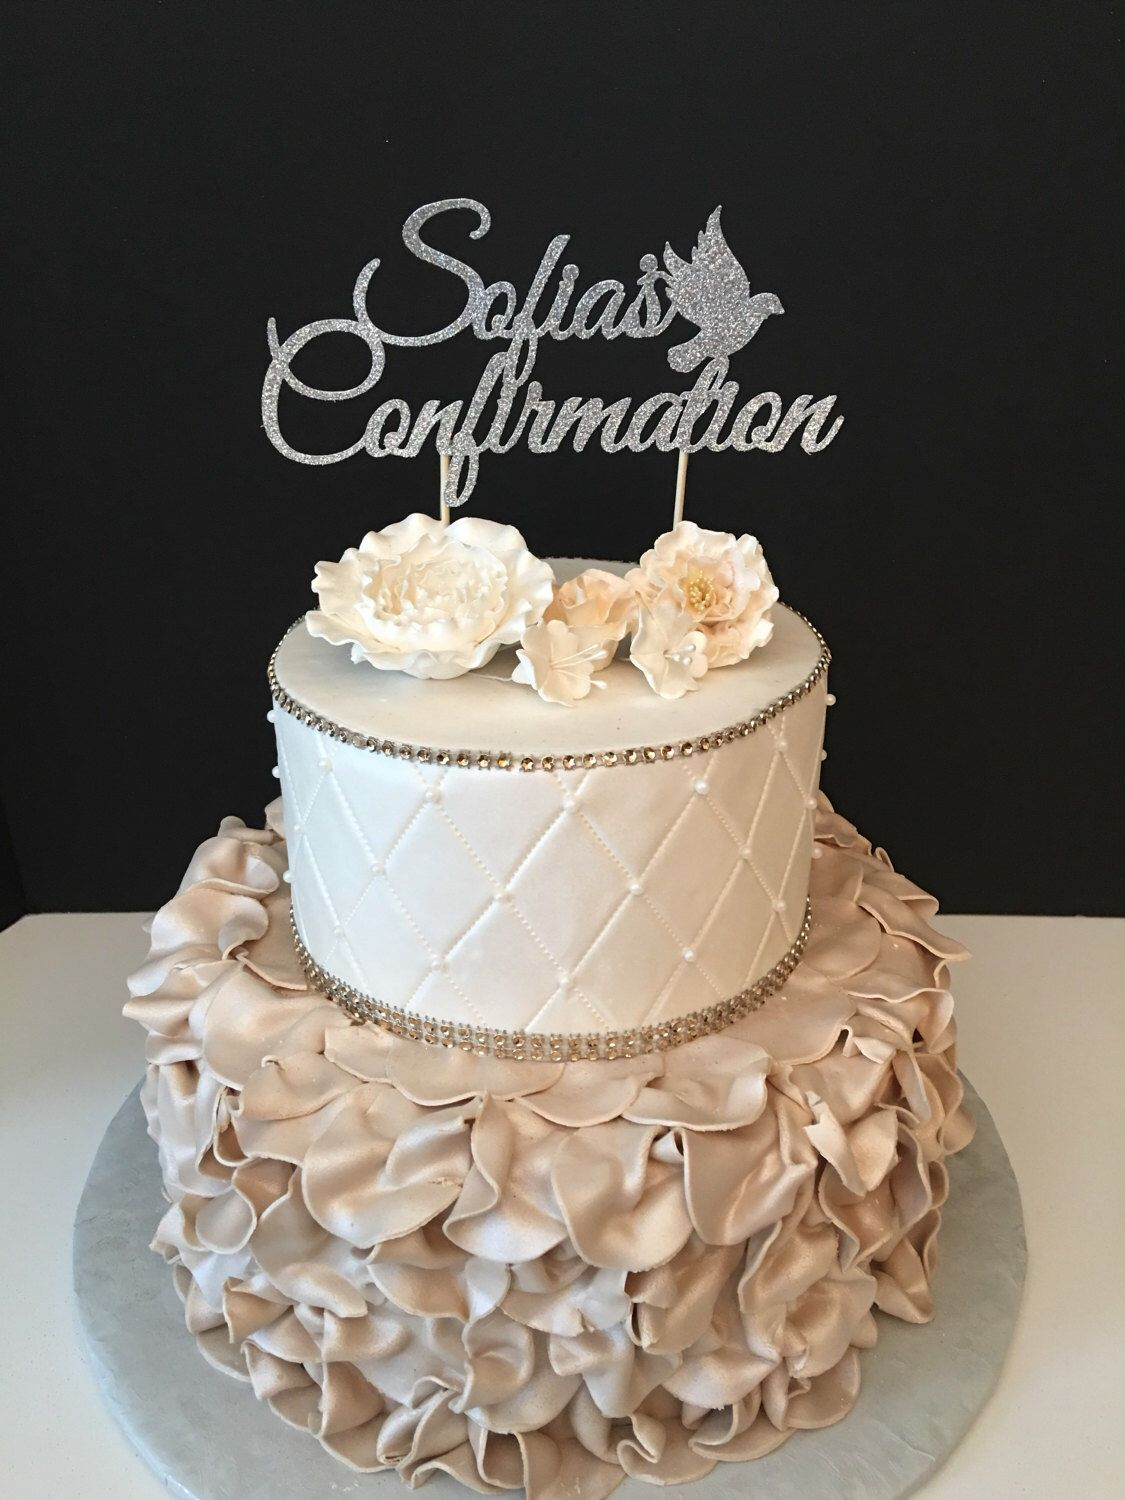 Personalized Confirmation Cake Topper Confirmation Cake Topper